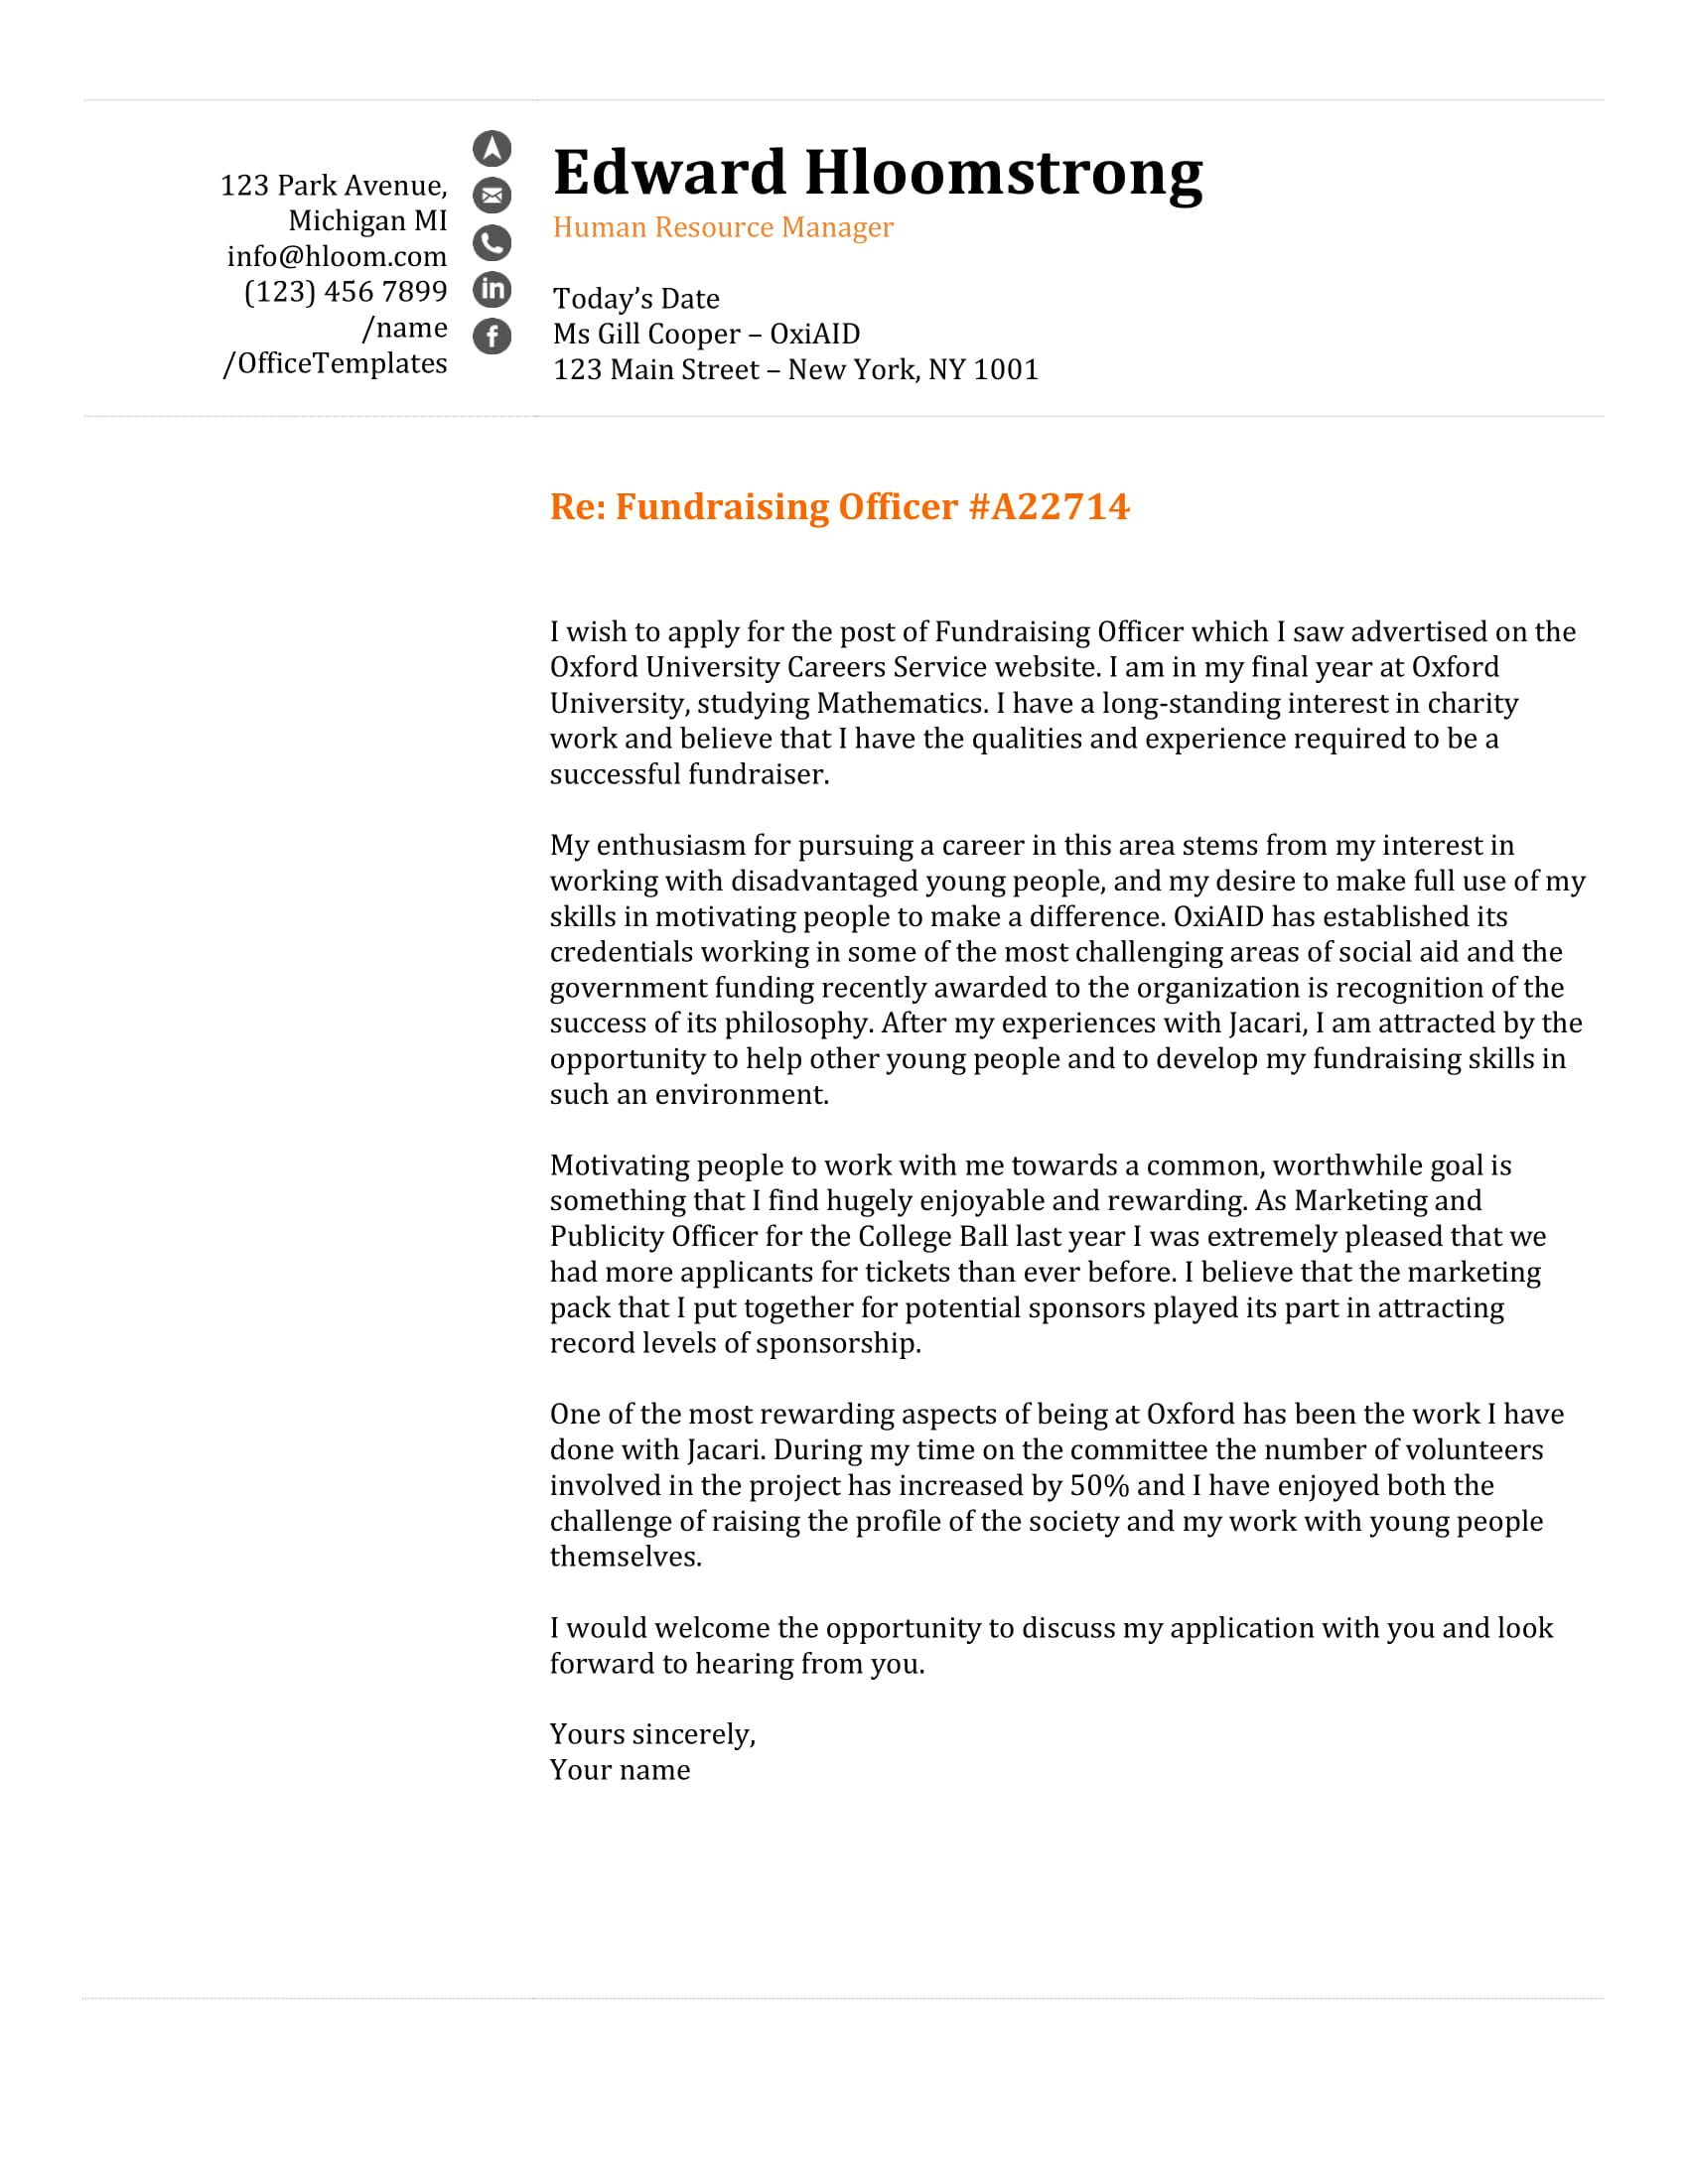 Cover Letter Template Word Reddit Check more at https